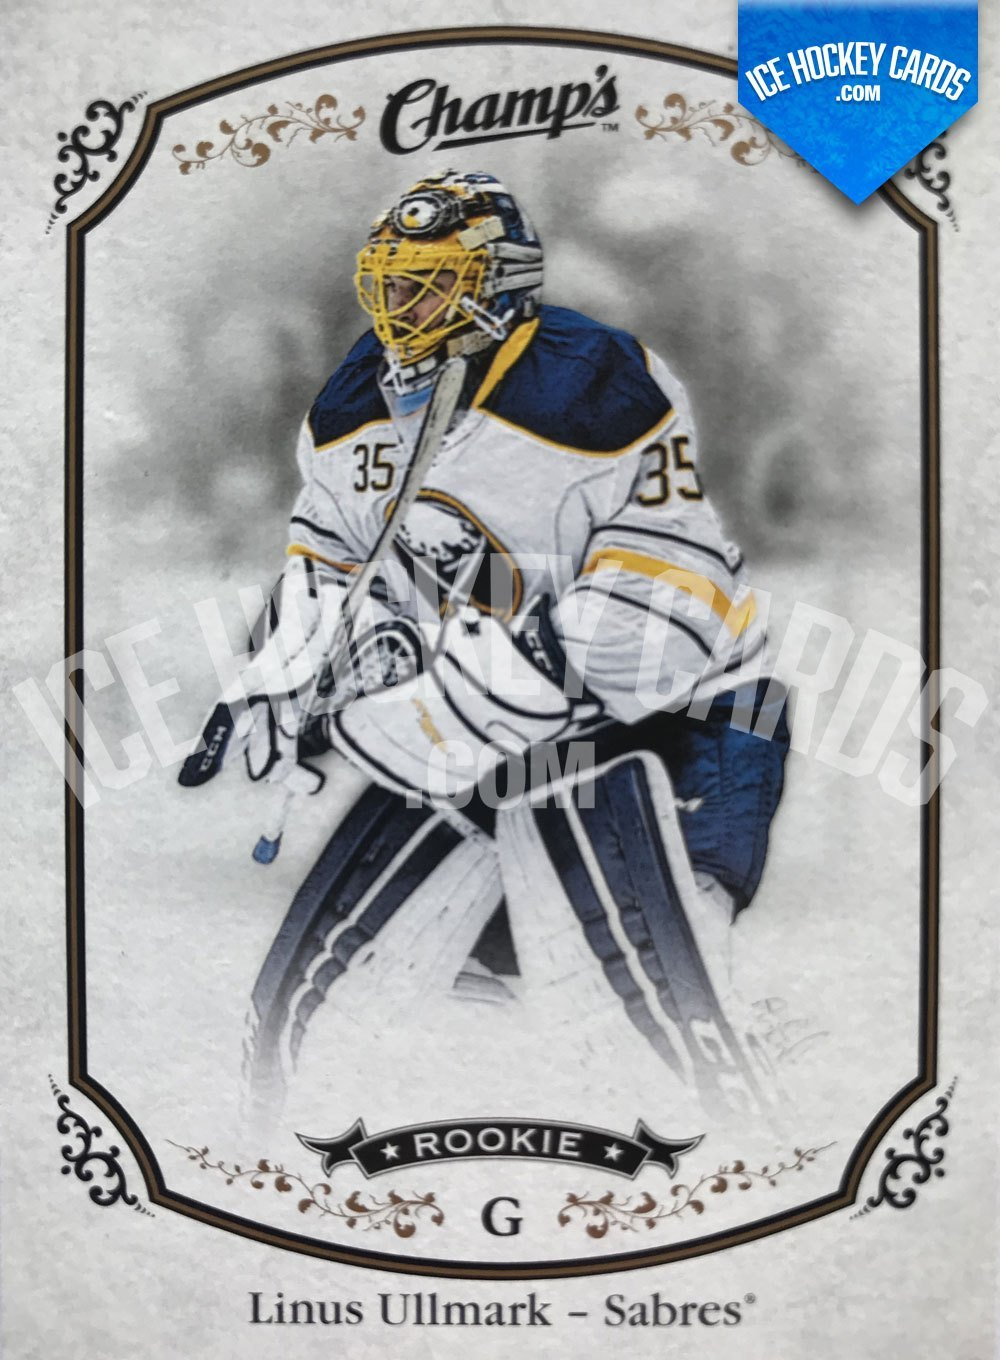 Upper Deck - Champs 15-16 - Linus Ullmark Rookie Card